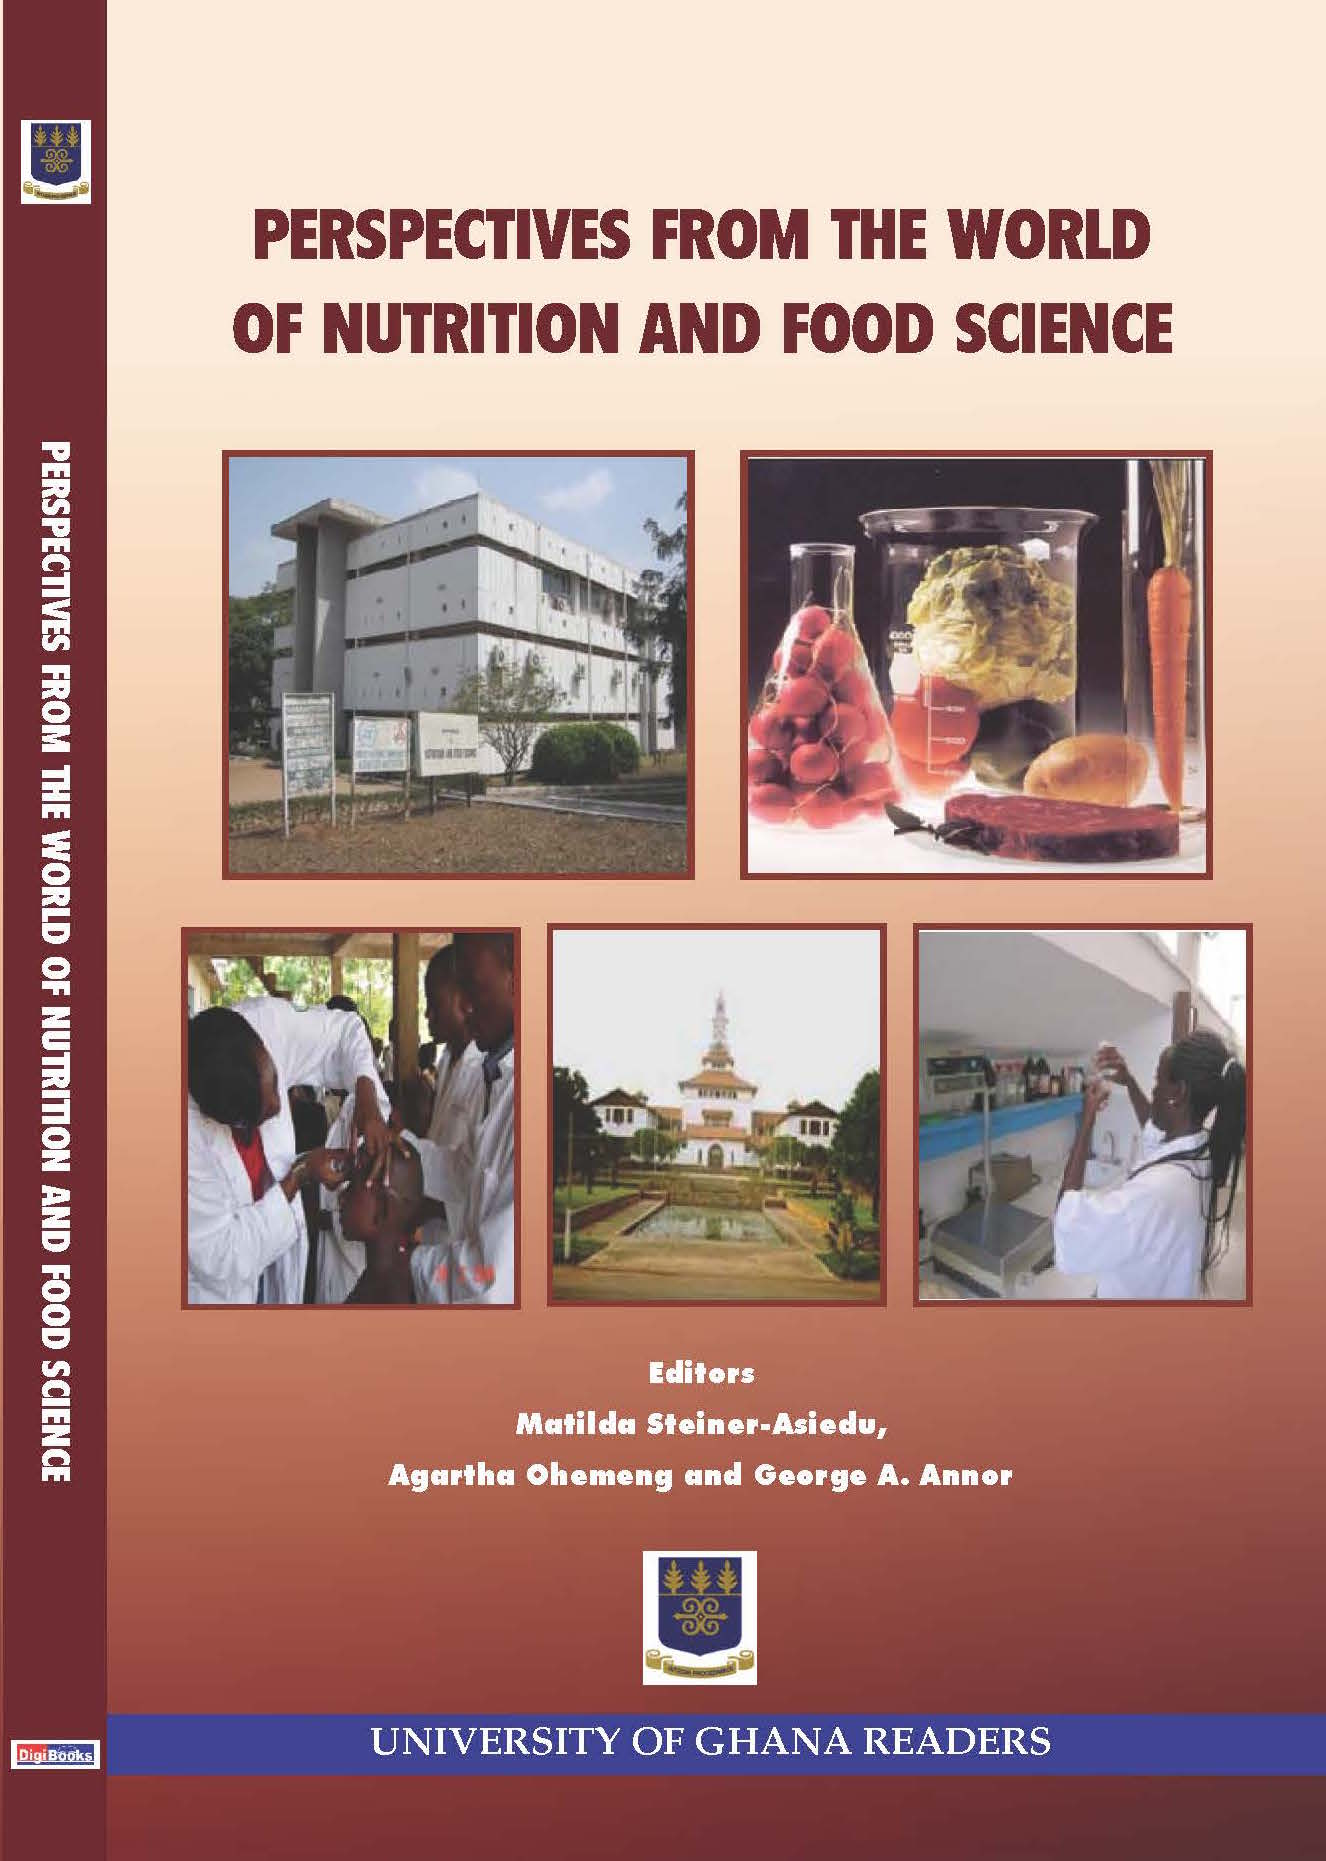 PERSPECTIVES-FROM-THE-WORLD-OF-NUTRITION-AND-FOOD-SCIENCE